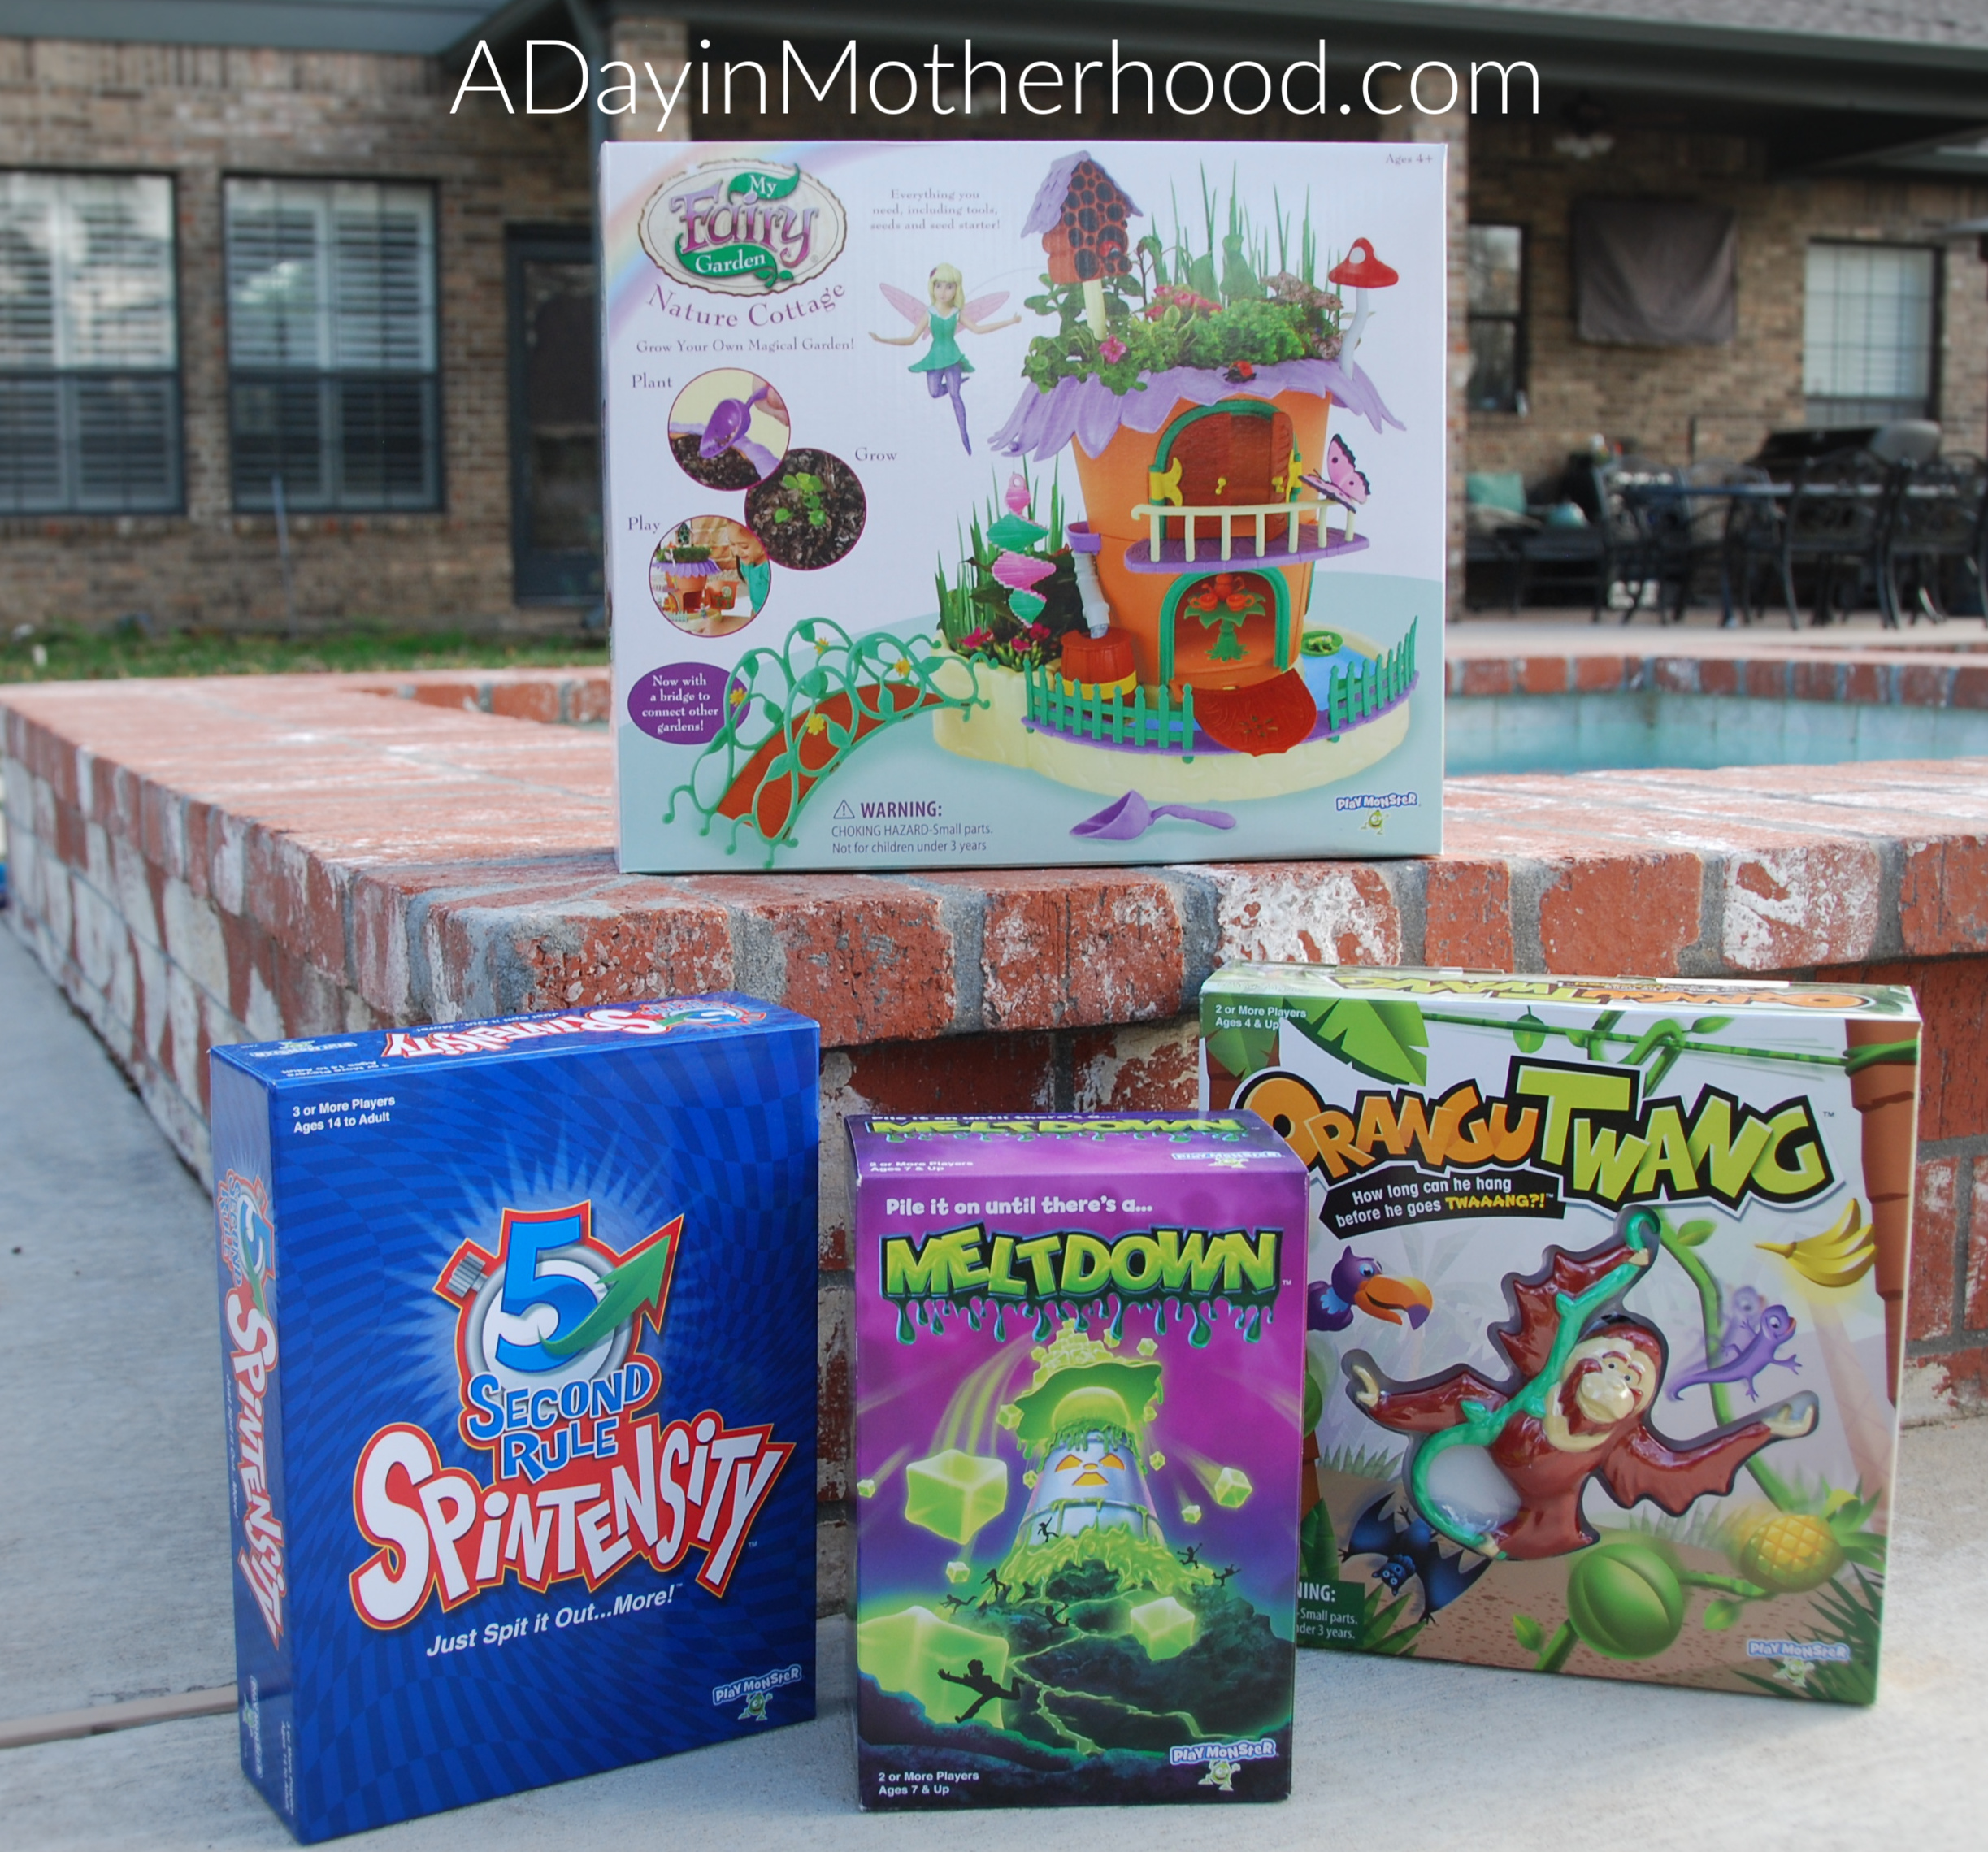 PlayMonster Survival Guide is Fun for the Whole Family-photo of four games on ADayinMotherhood.com